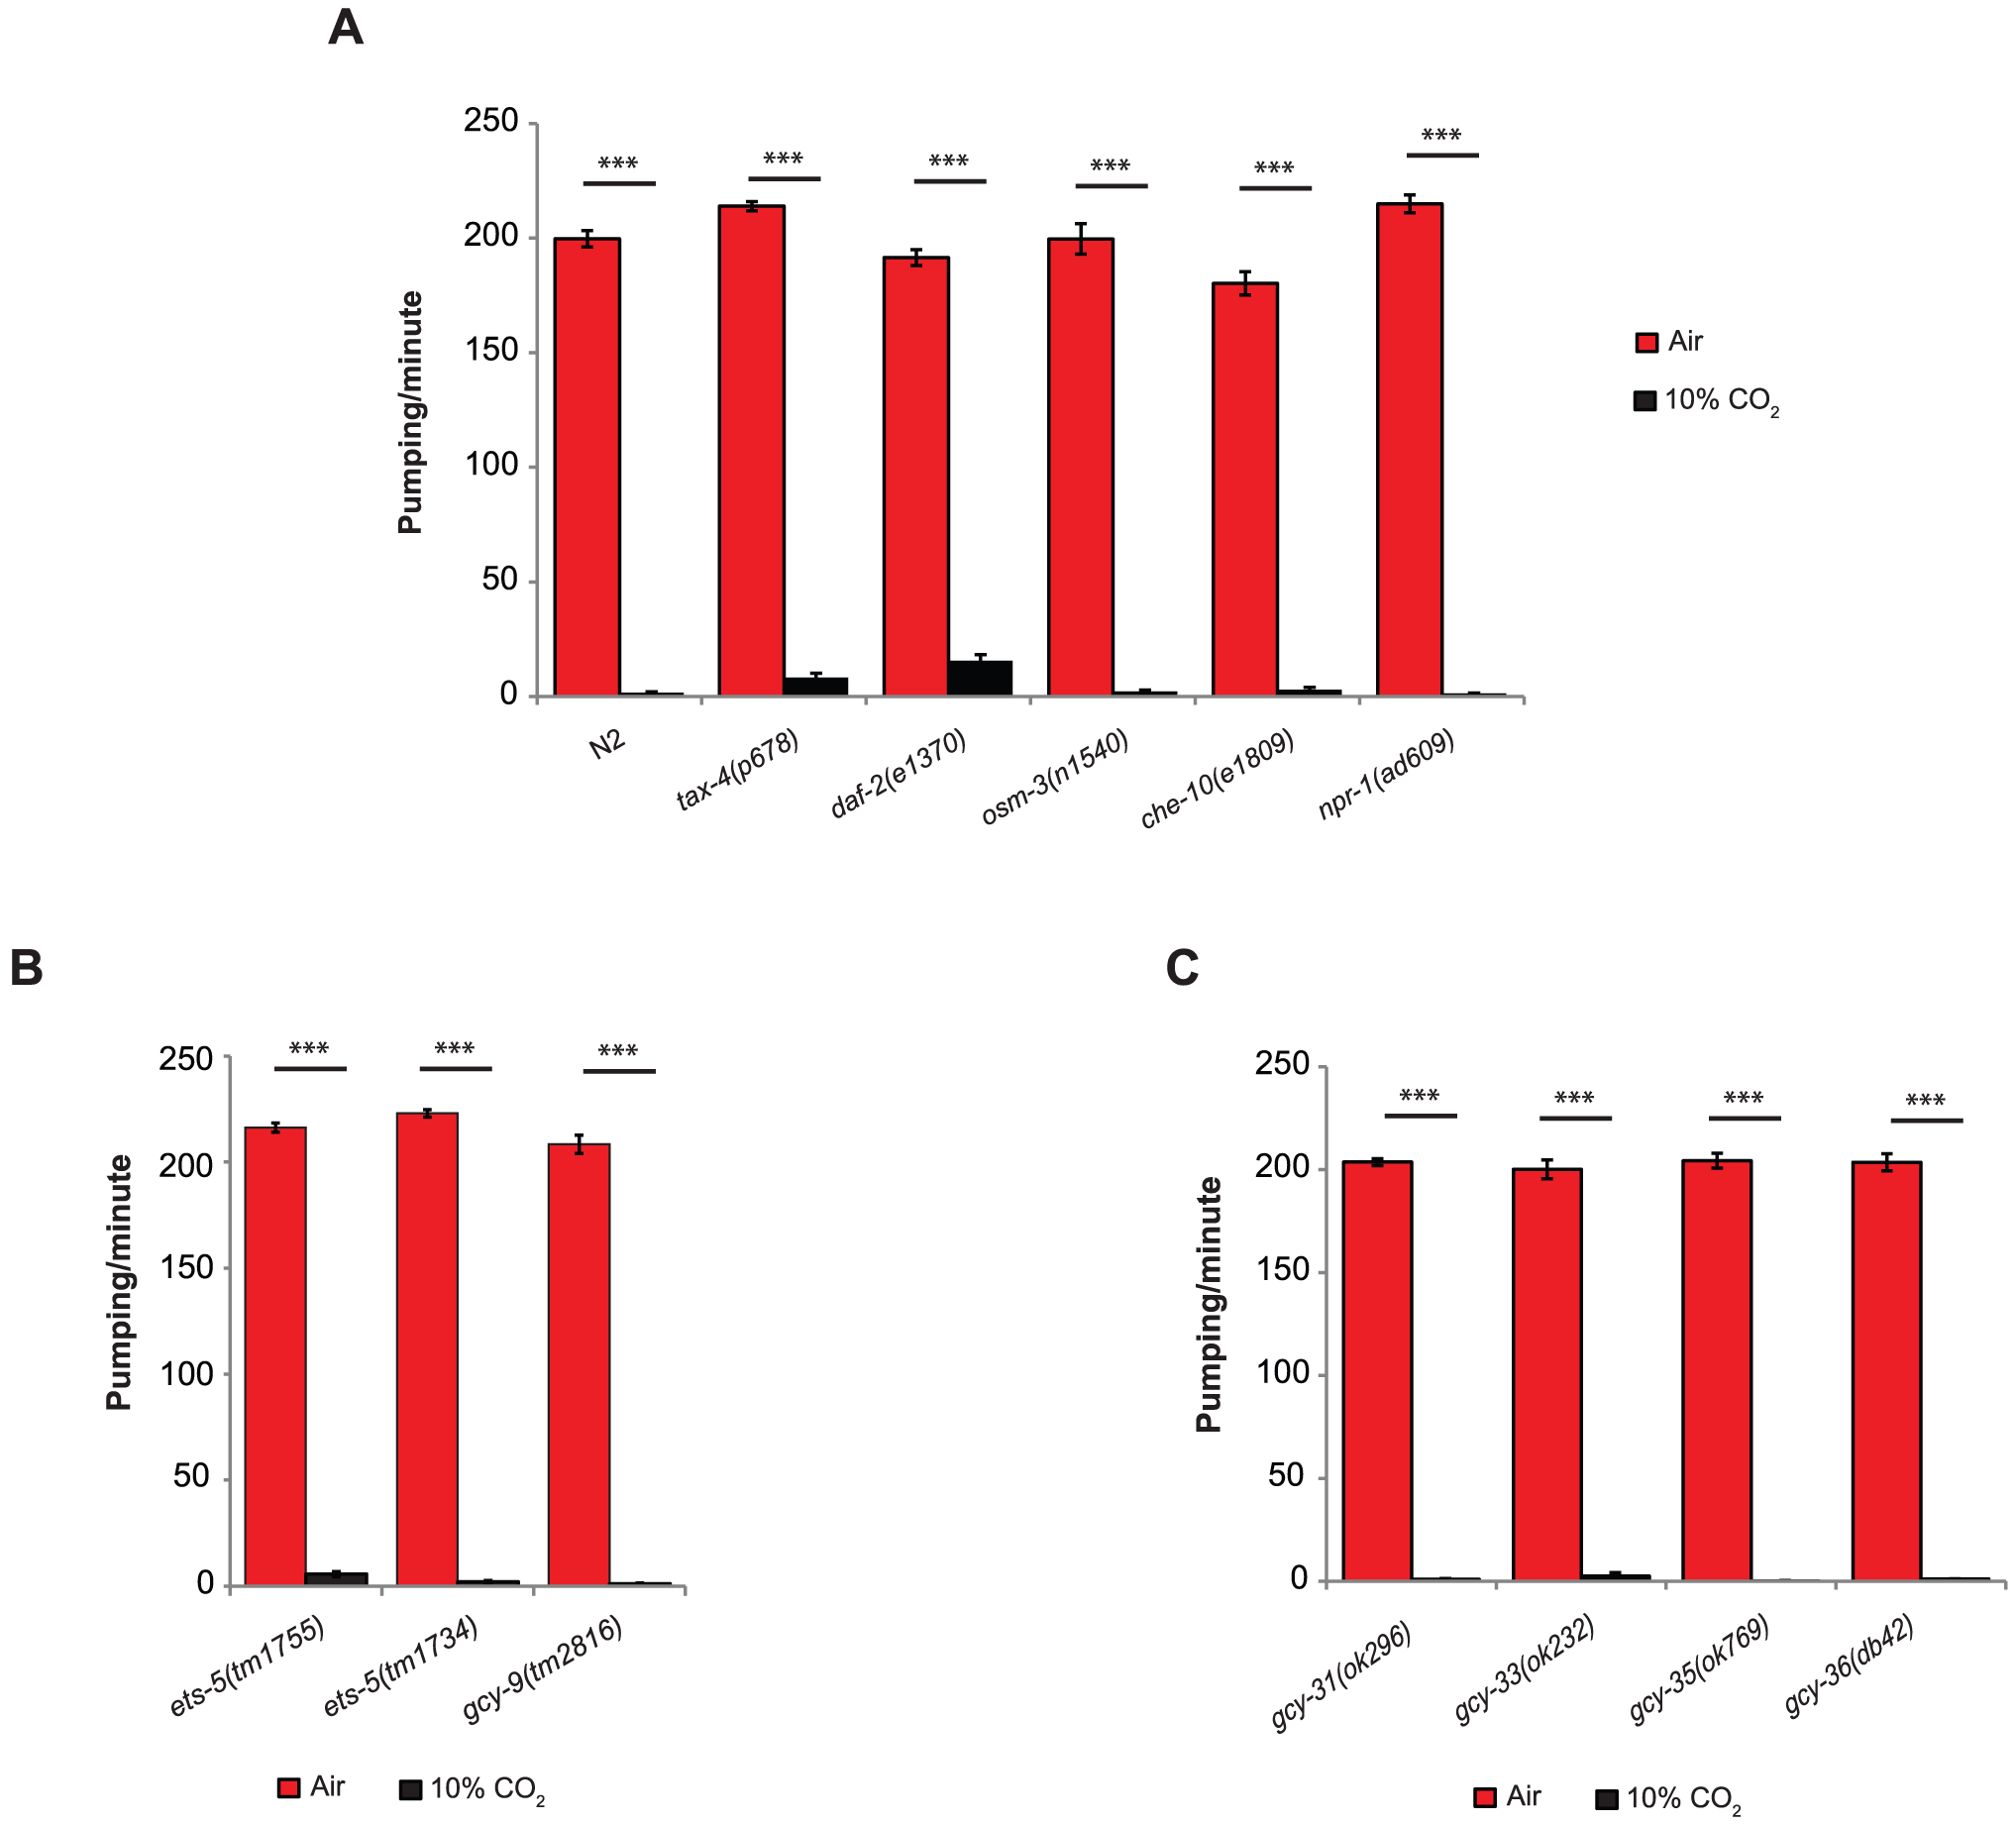 The inhibition of pumping following exposure to high CO<sub>2</sub> level is independent of molecular pathways that regulate CO<sub>2</sub> avoidance and oxygen sensing.